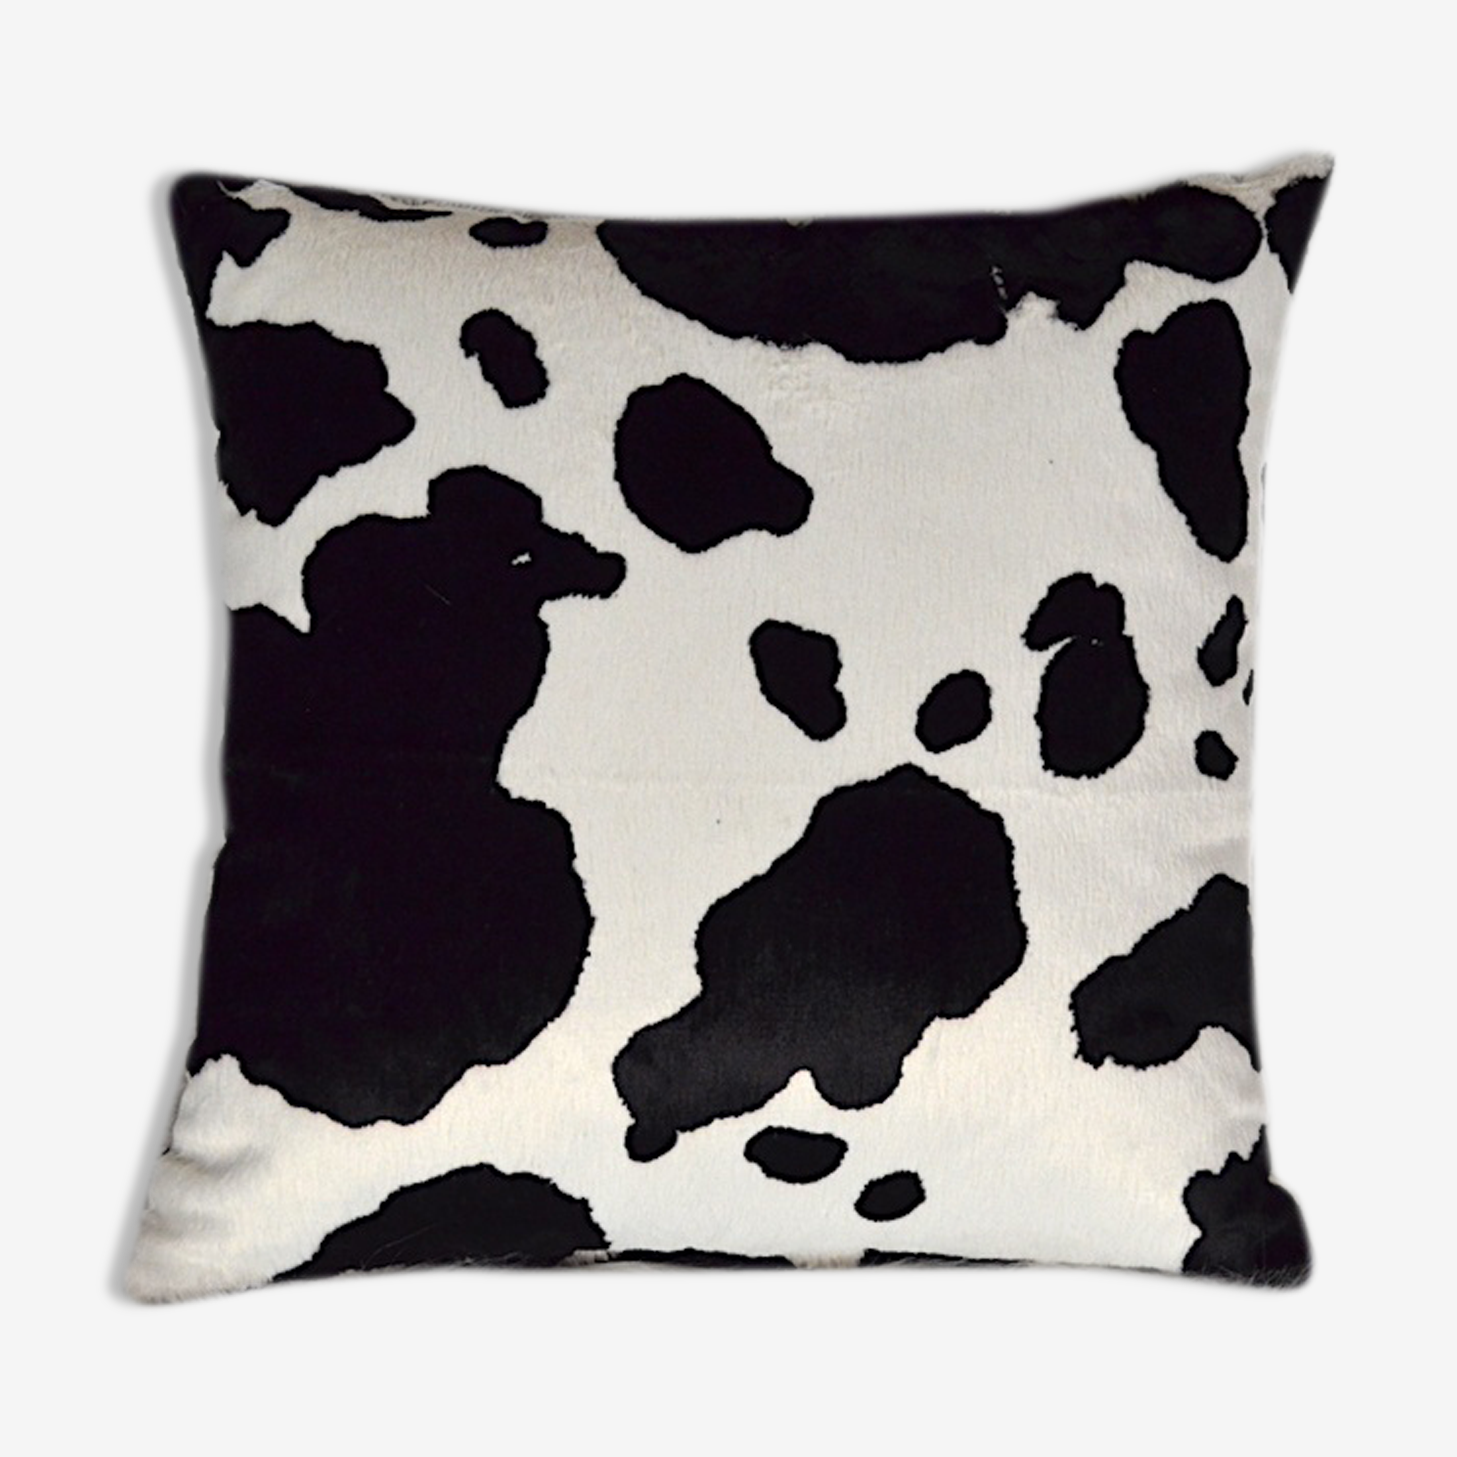 Coussin design fourrure motif vache fait main made in france